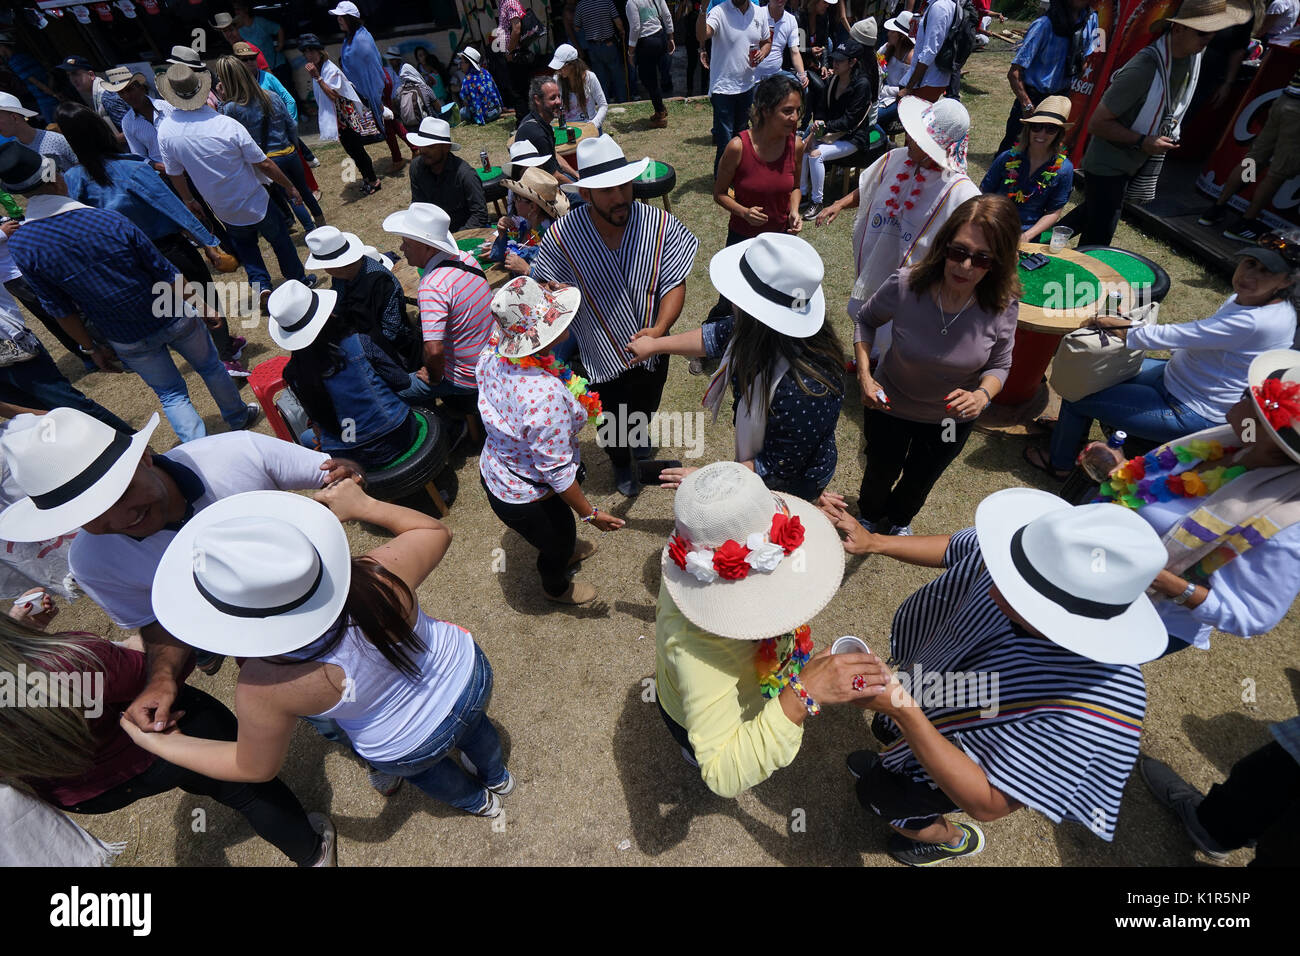 August 6, 2017 Medellin, Colombia: tourists wearing sombreros and ponchos dancing outdoors during the flower festival long weekend - Stock Image